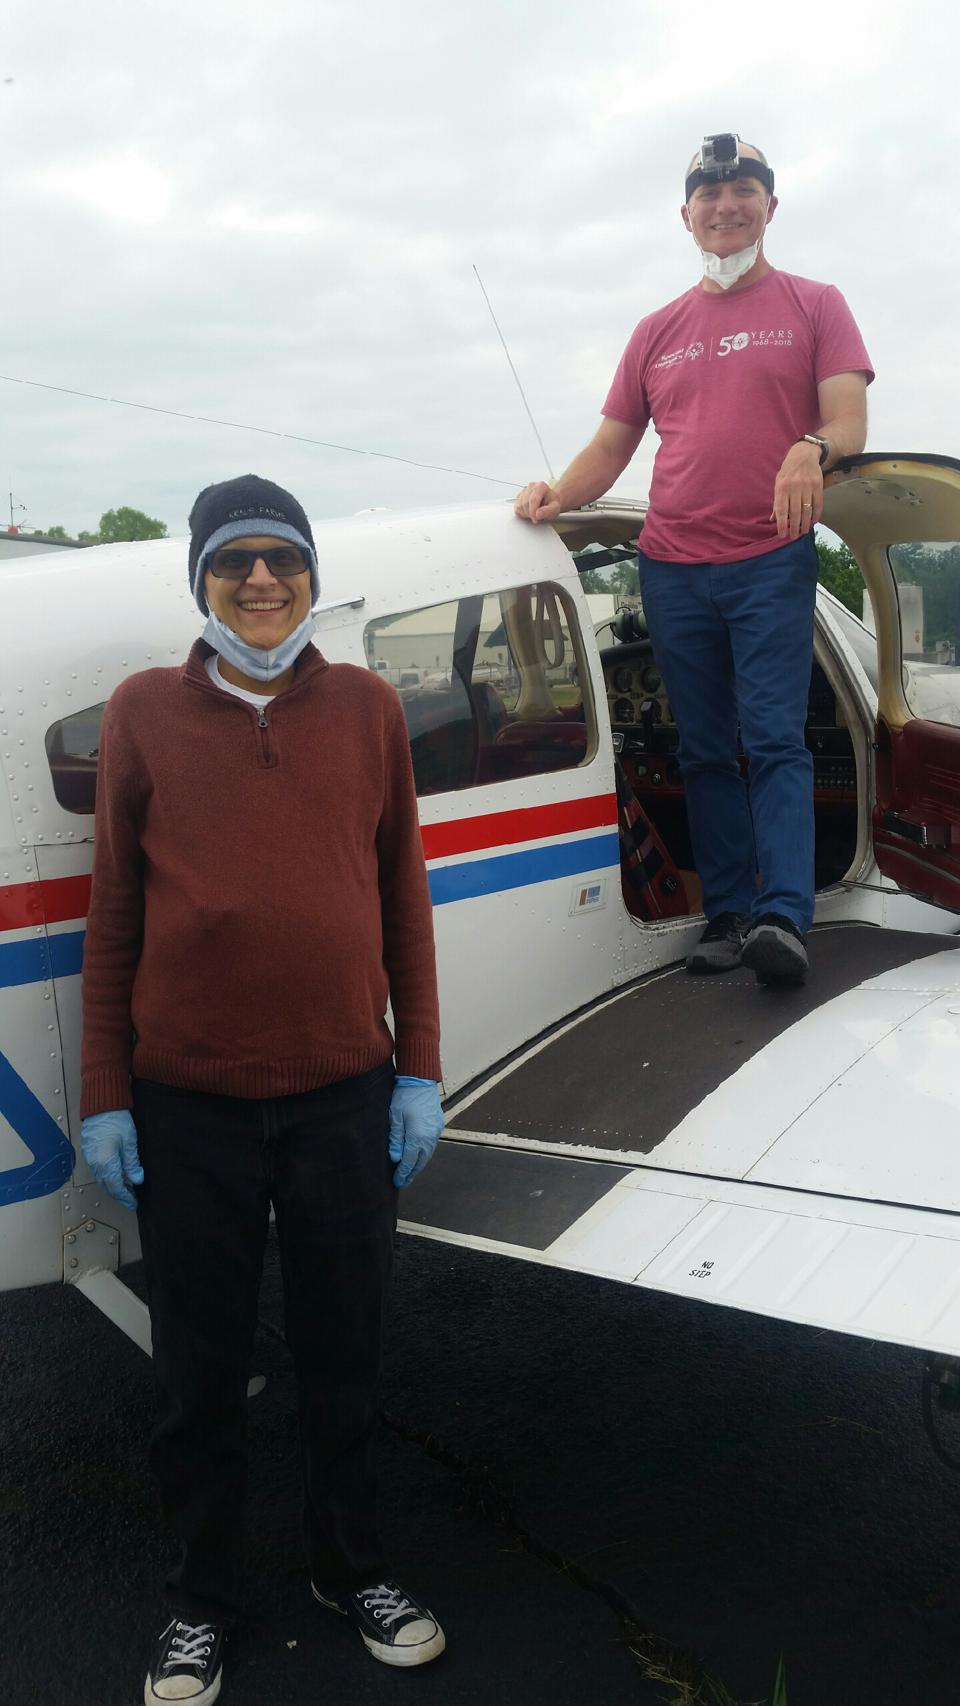 Rudy Torrini and friend Alan Kirby standing next to a Piper Cherokee at Festus Airport, MO